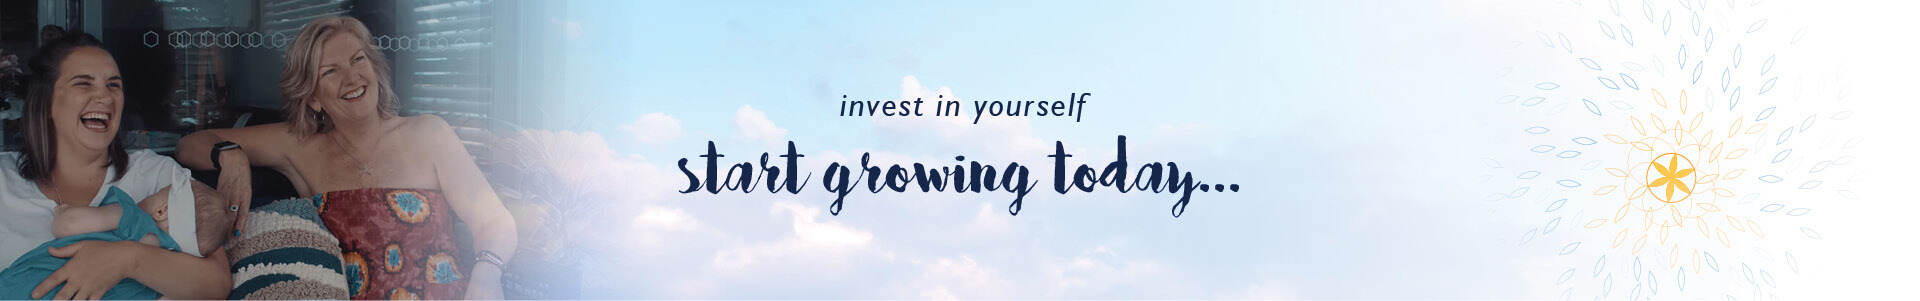 Invest in yourself. Start growing today.